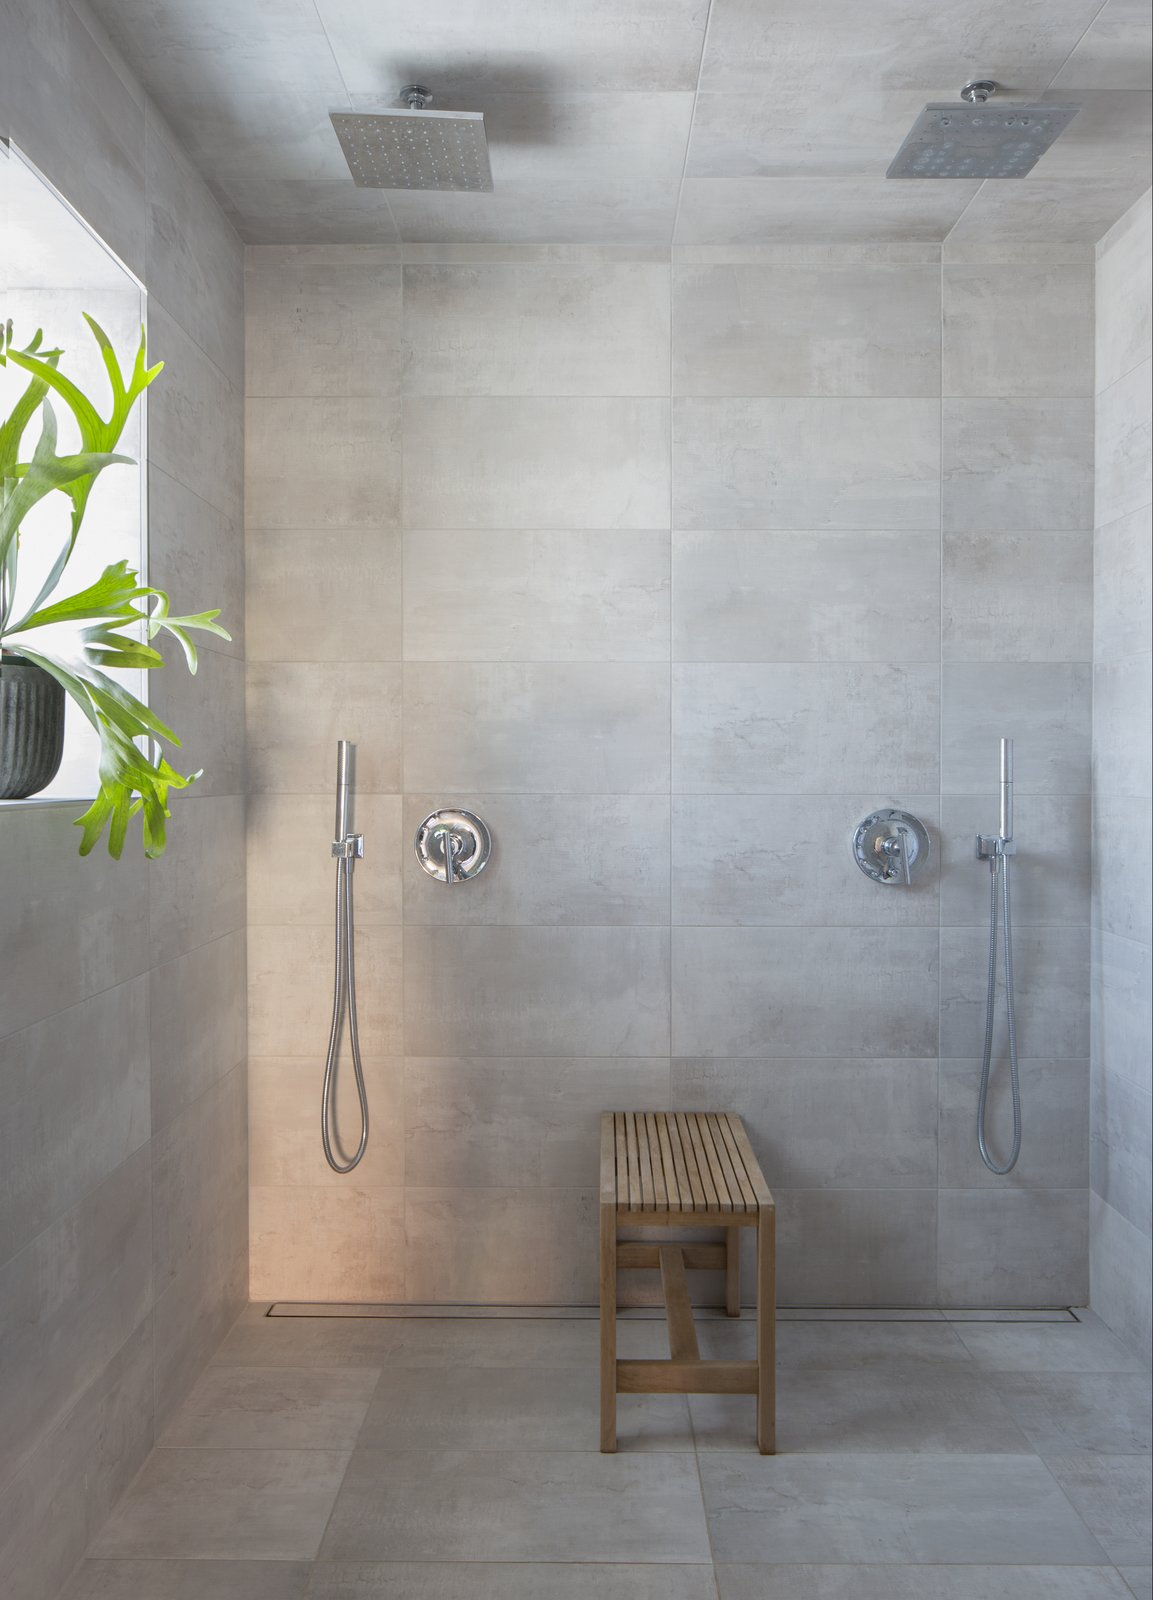 Bathroom at Facility by Carlo Parente Architecture.